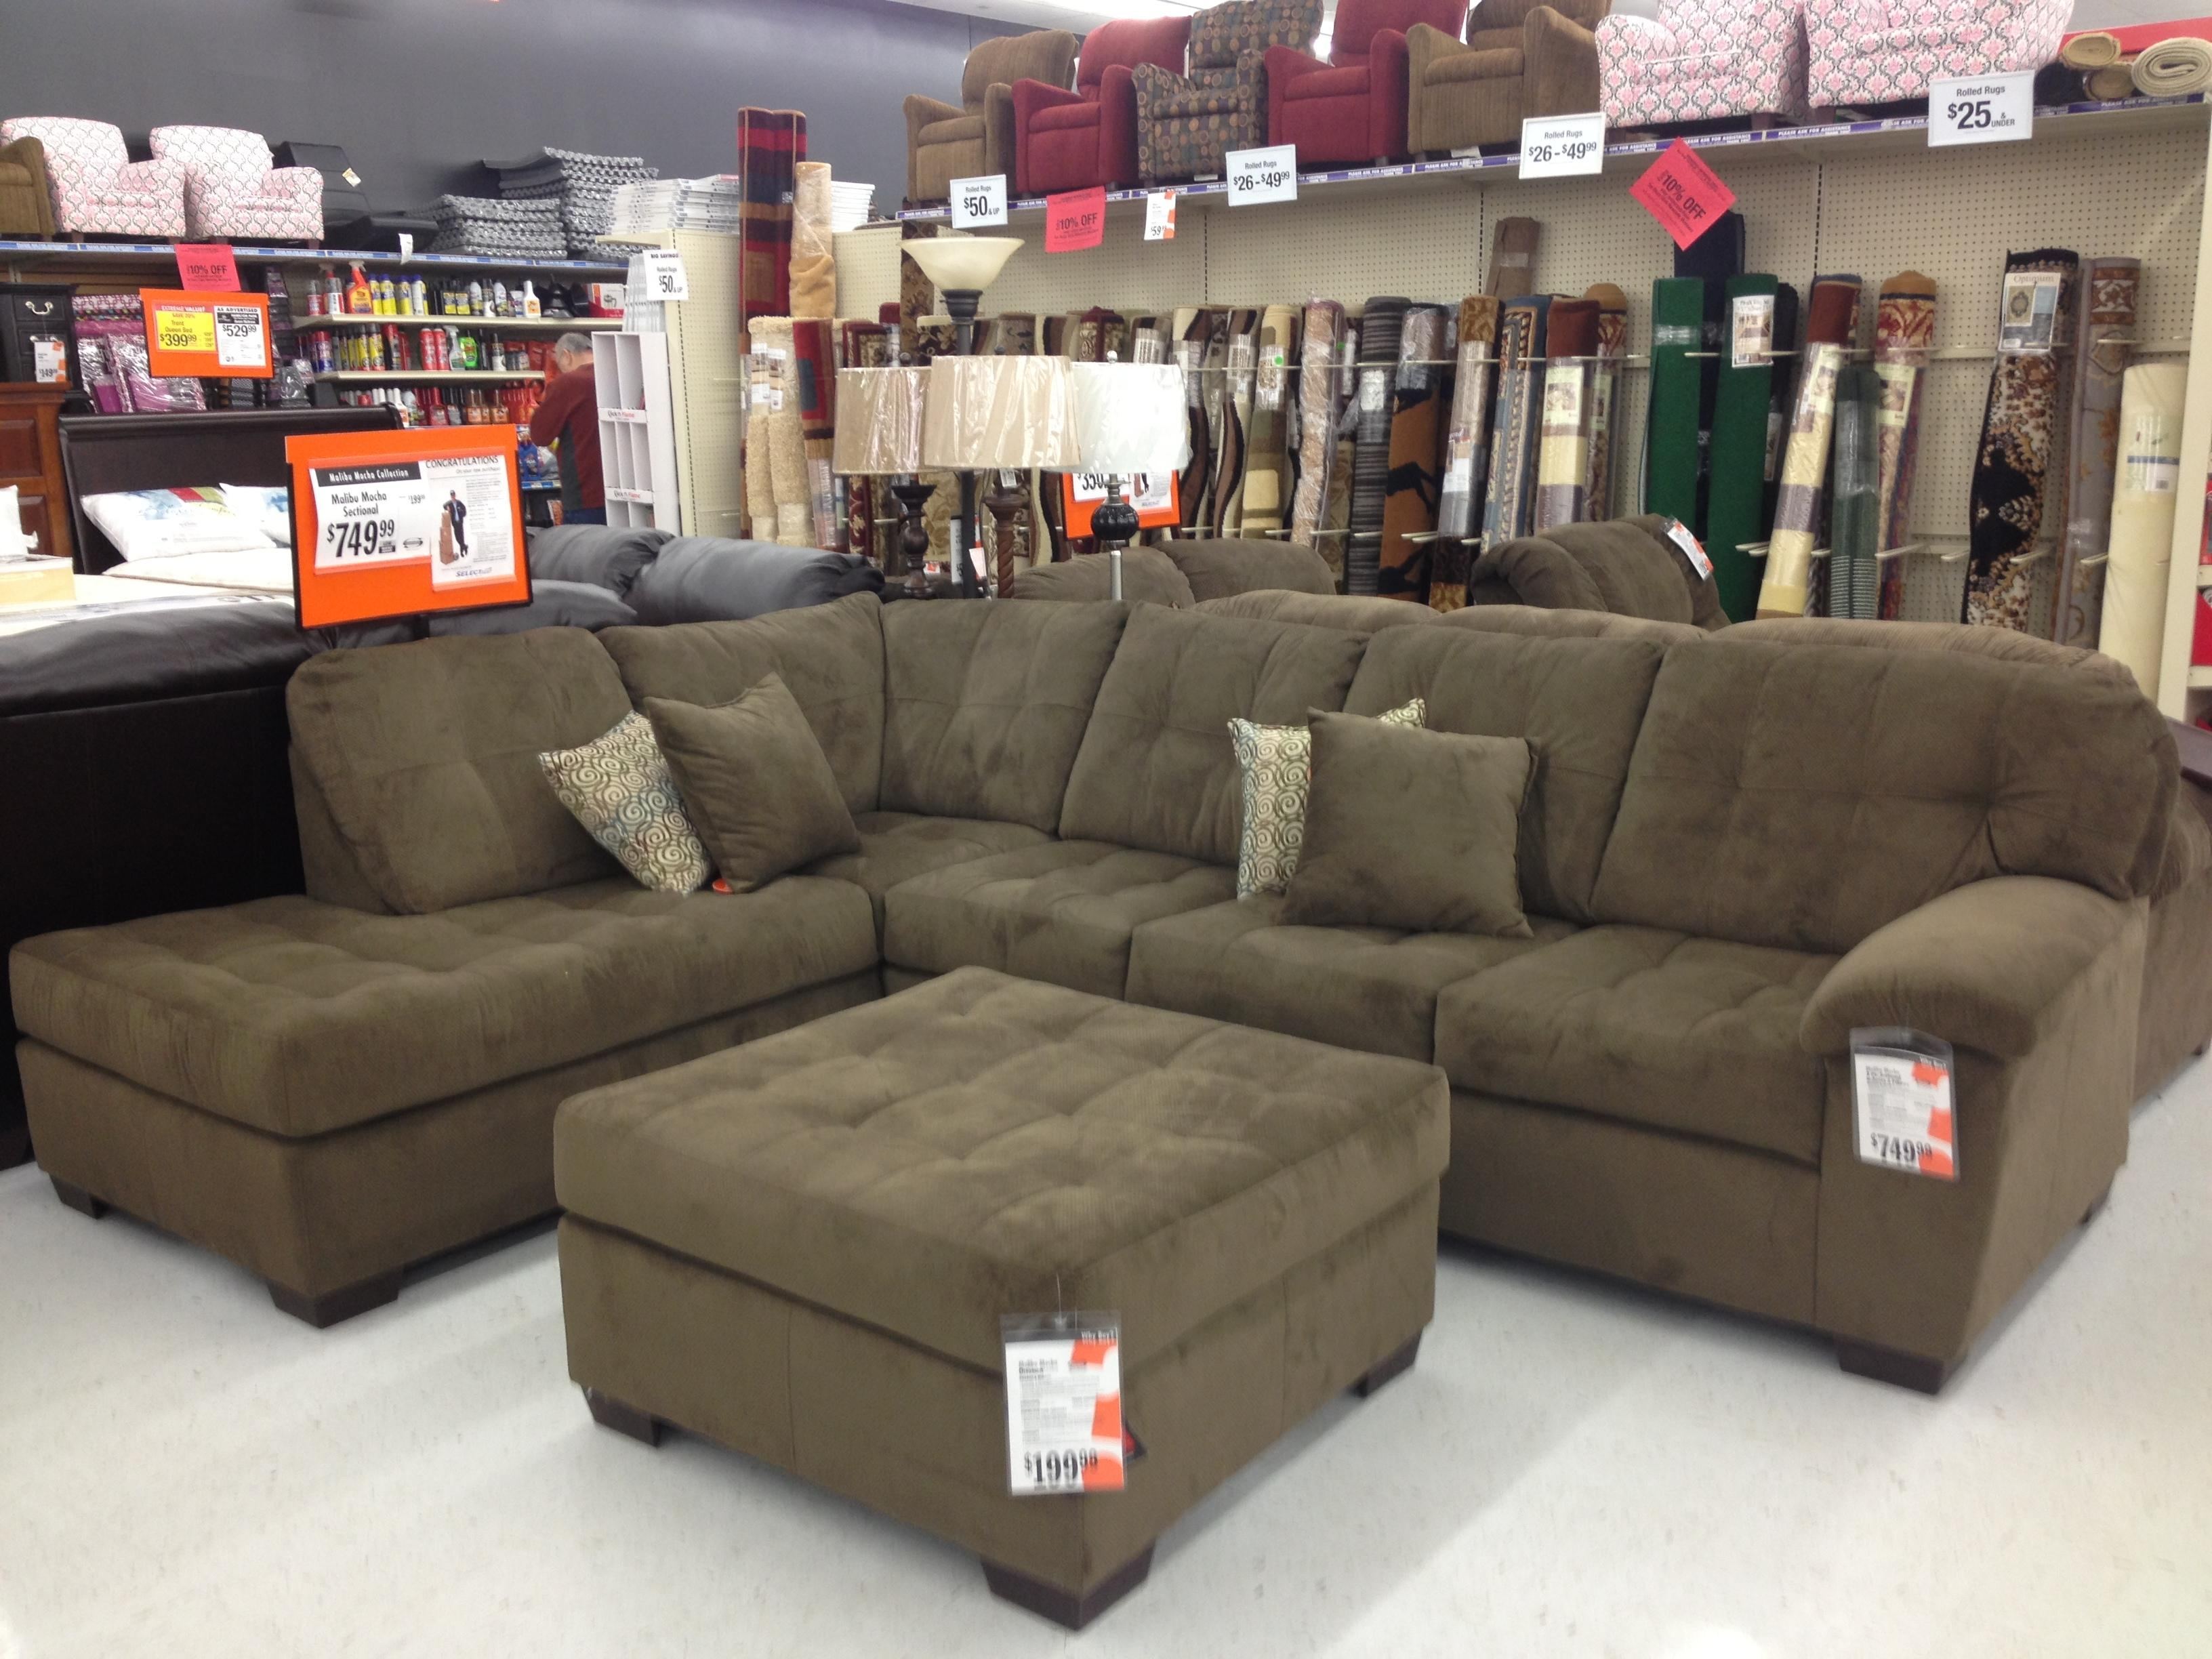 Simmons Sofas At Big Lots | Tehranmix Decoration Intended For Large Comfortable Sectional Sofas (View 12 of 20)